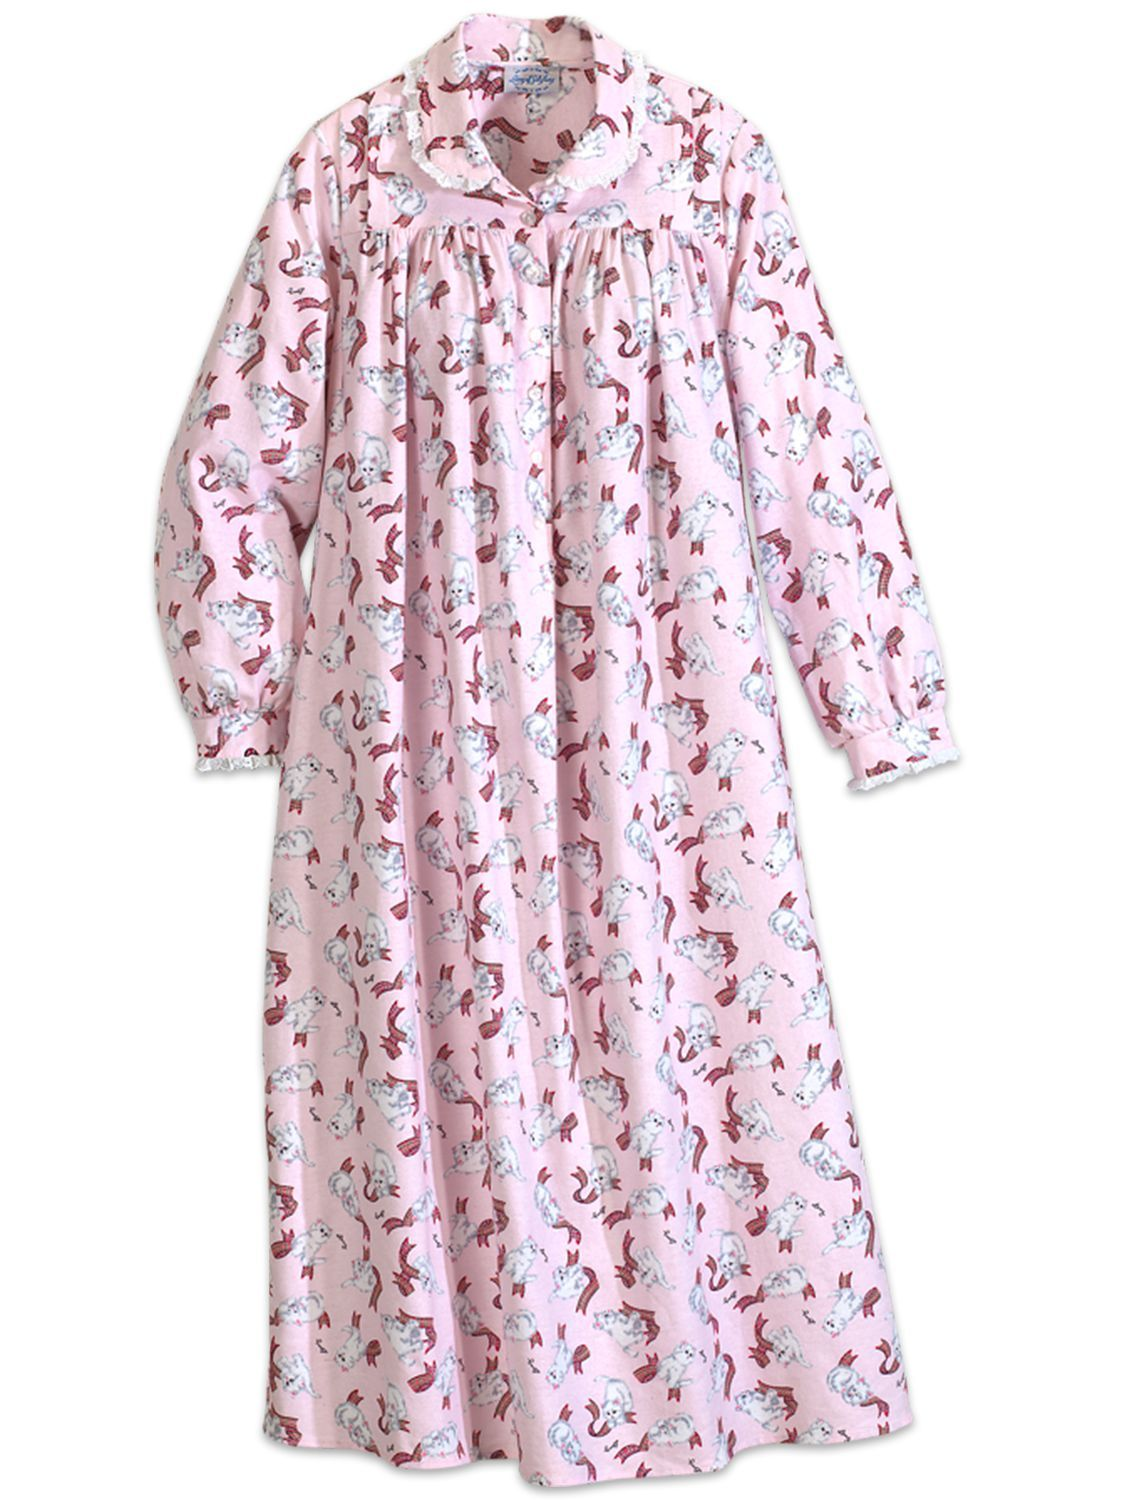 62c7eea97b1f Lanz Playful Kittens Flannel Nightgown